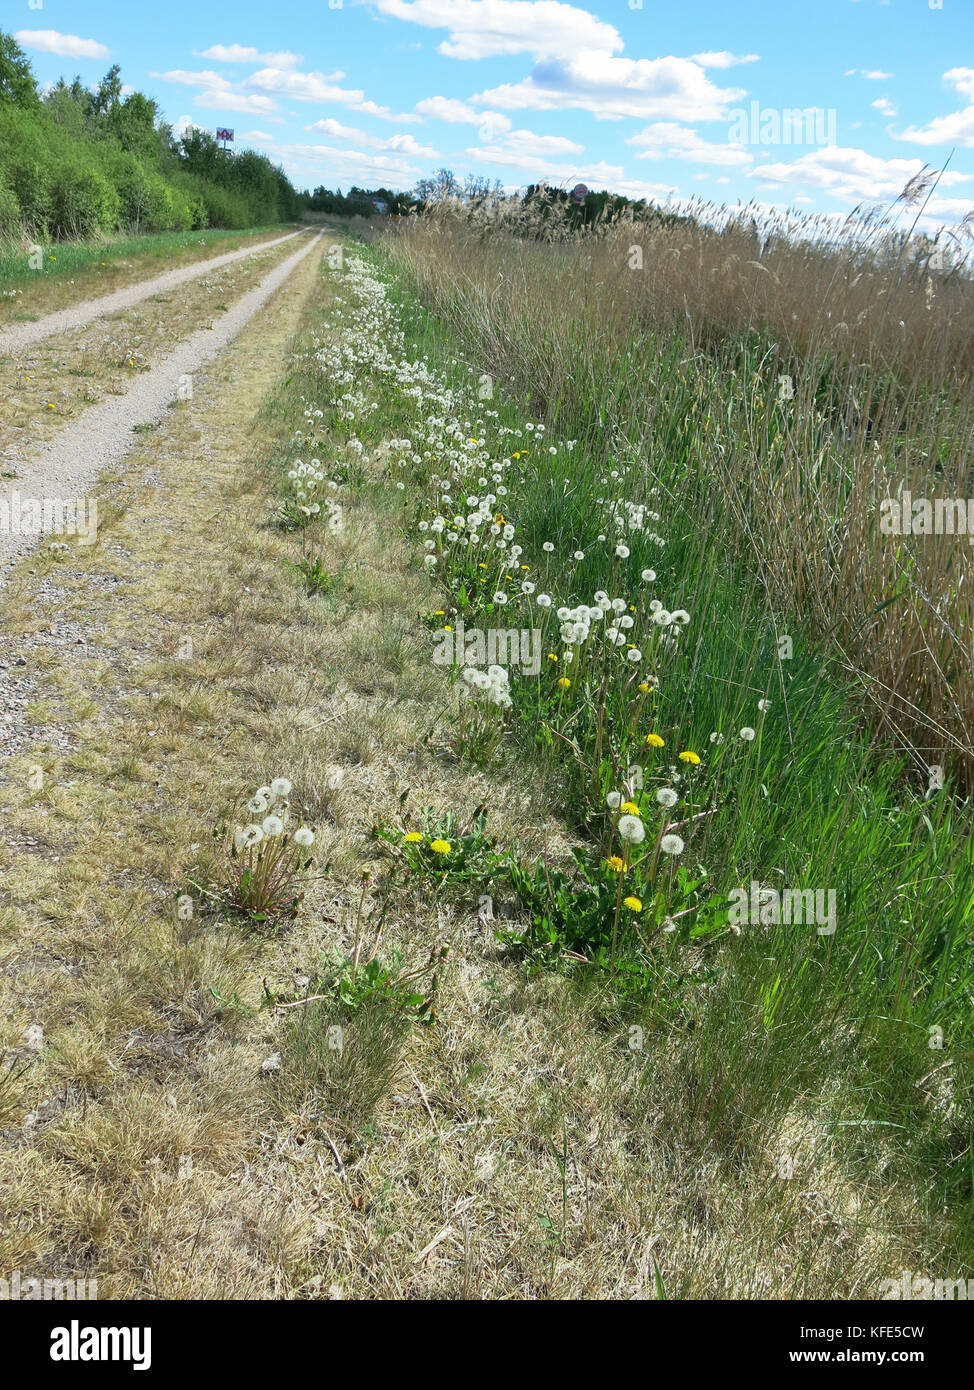 DANDELIONS bloomed at the roadside 2017 - Stock Image